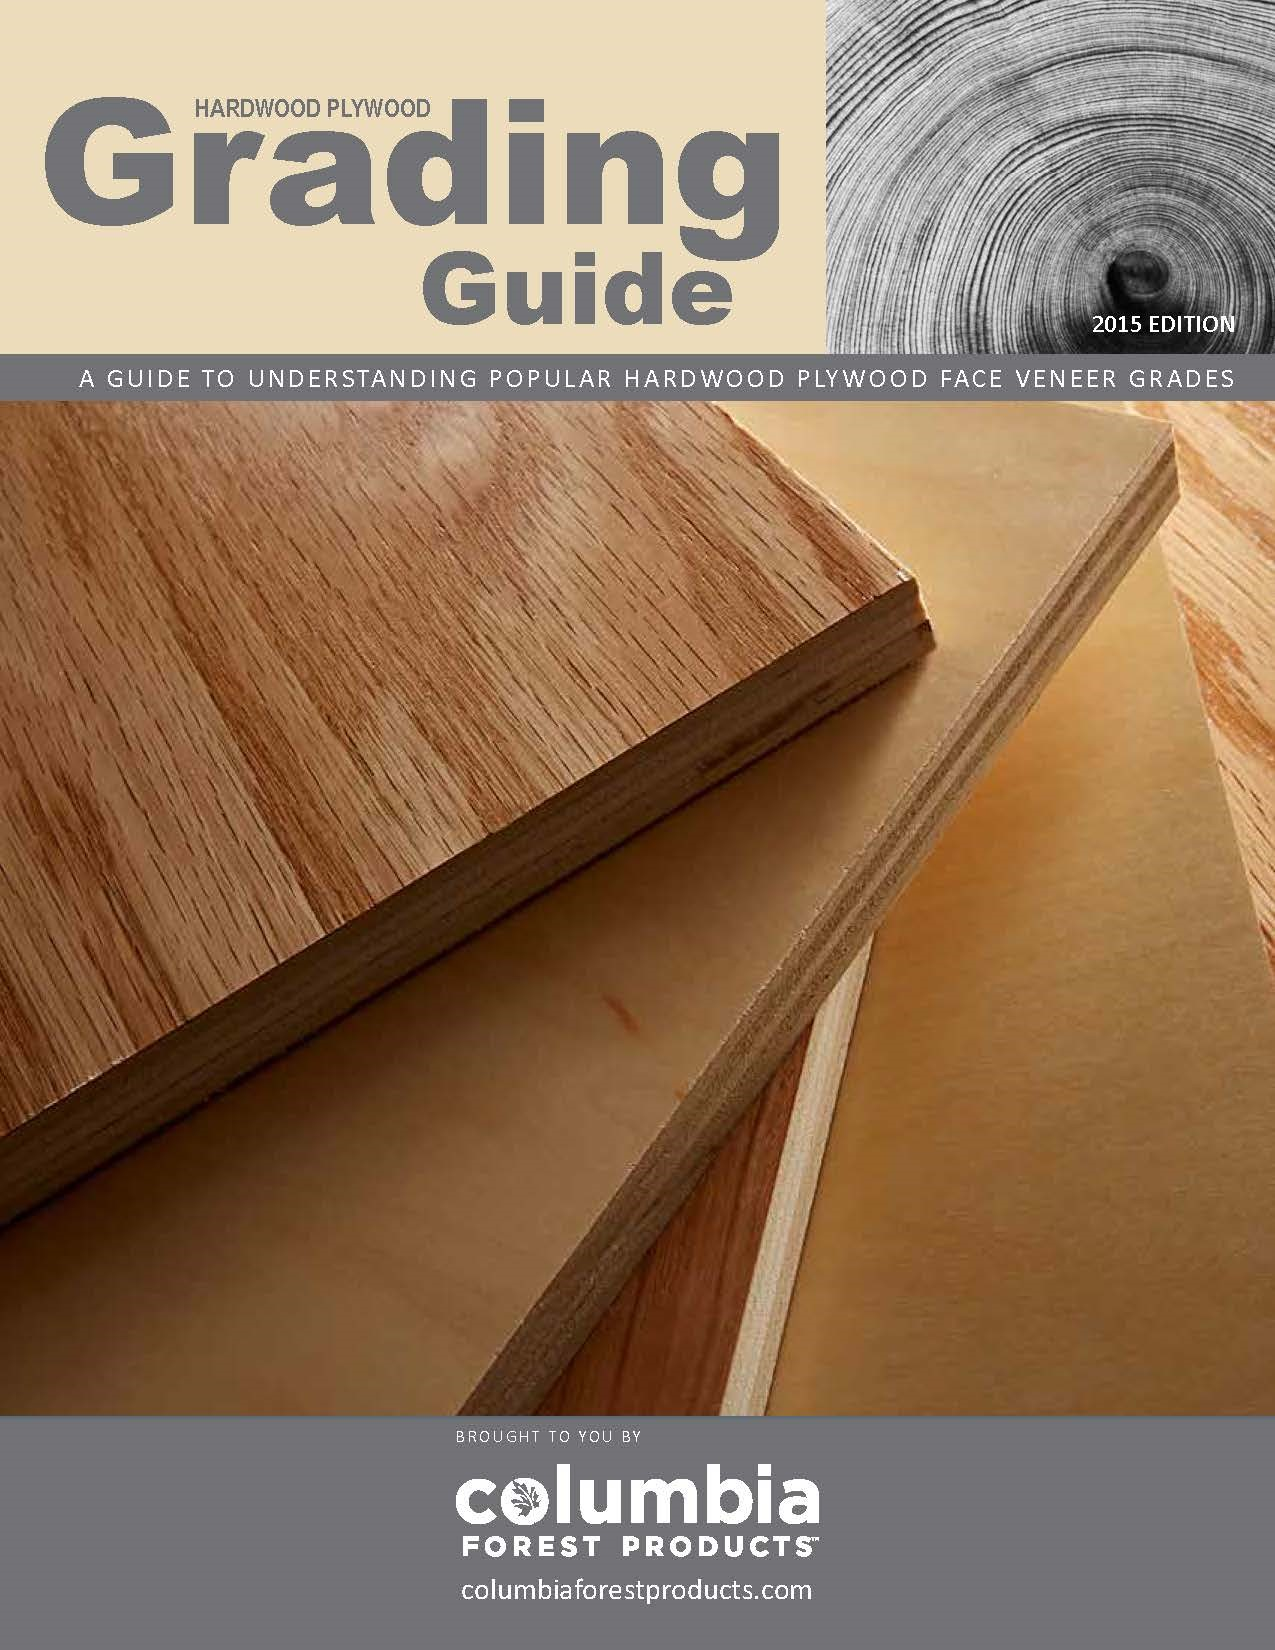 PLYWOOD GRADING GUIDE